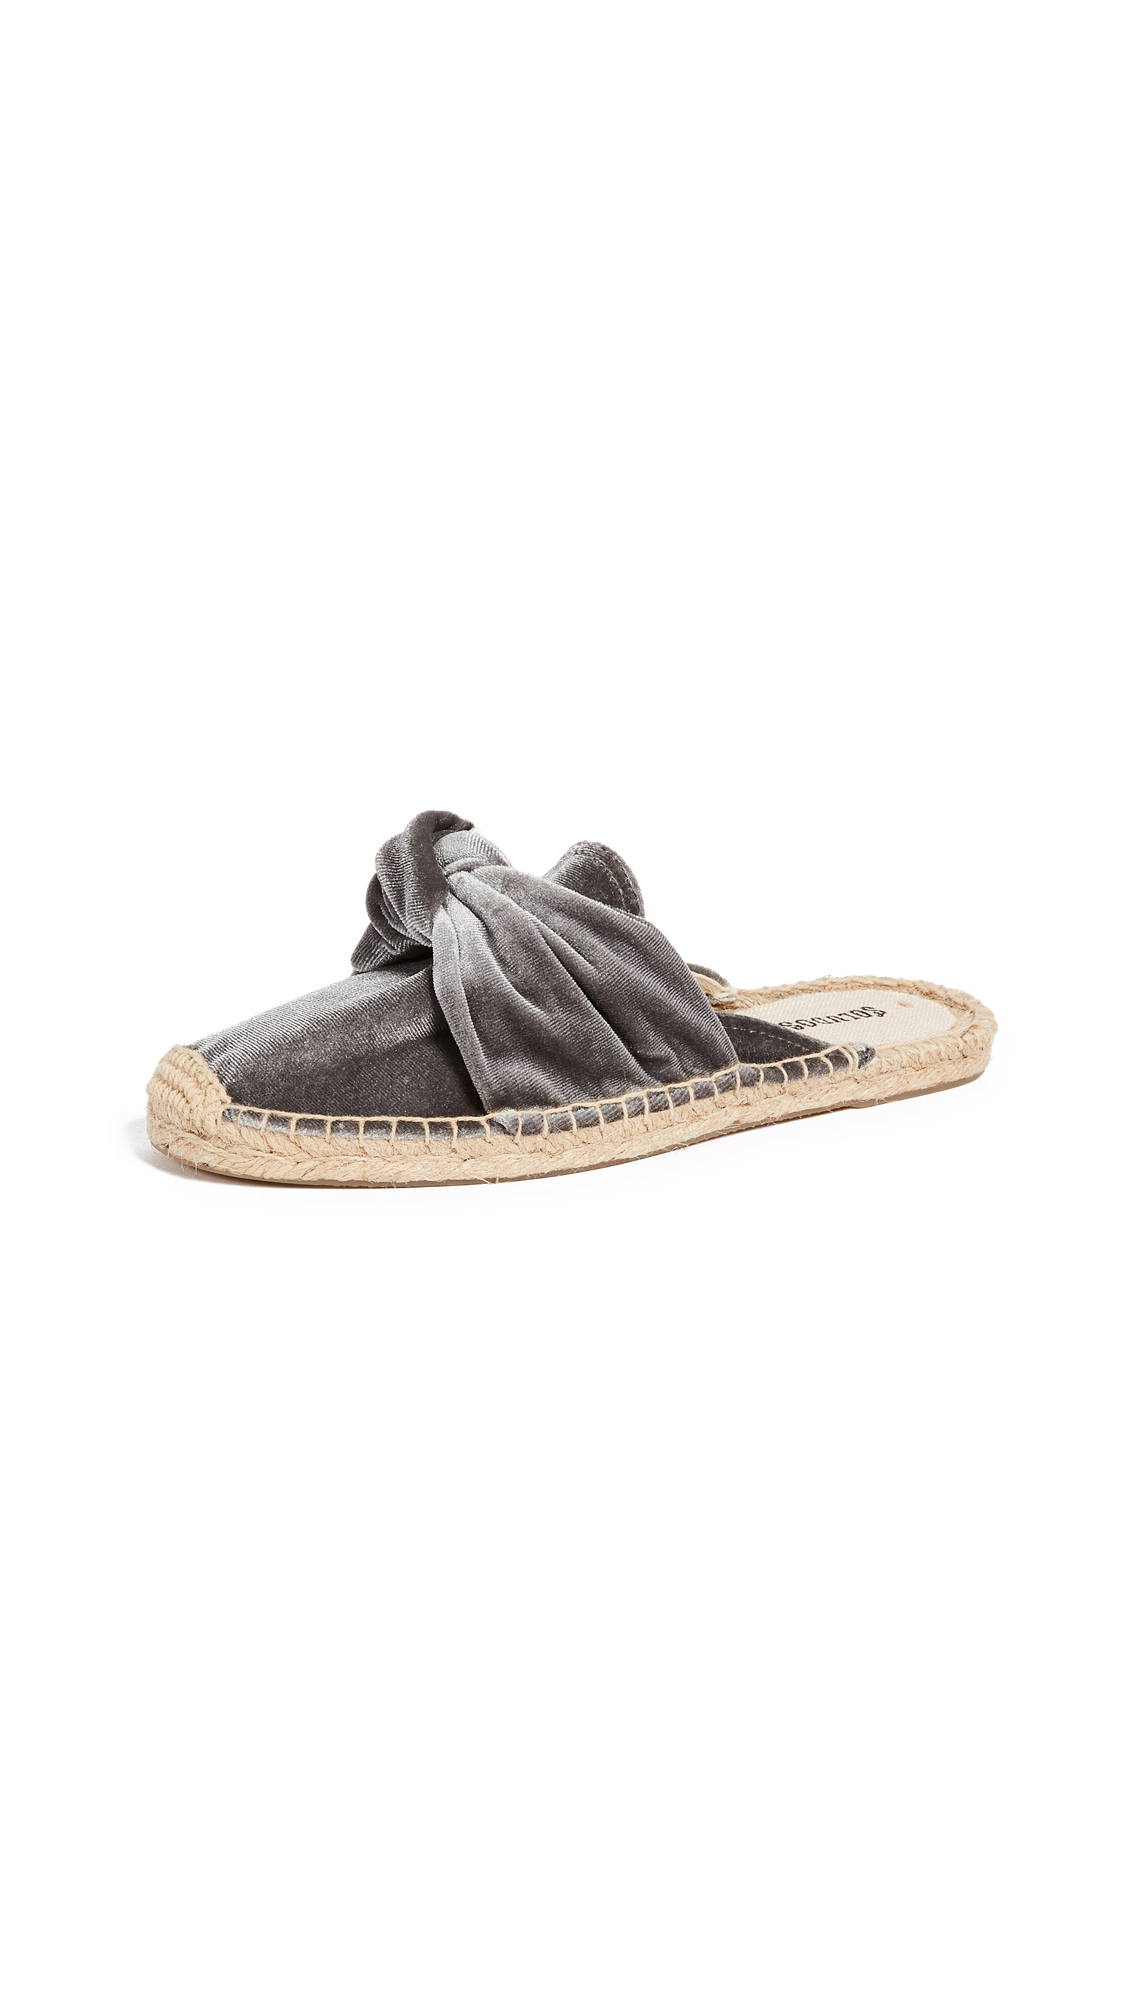 Soludos Knotted Velvet Mules - Gray